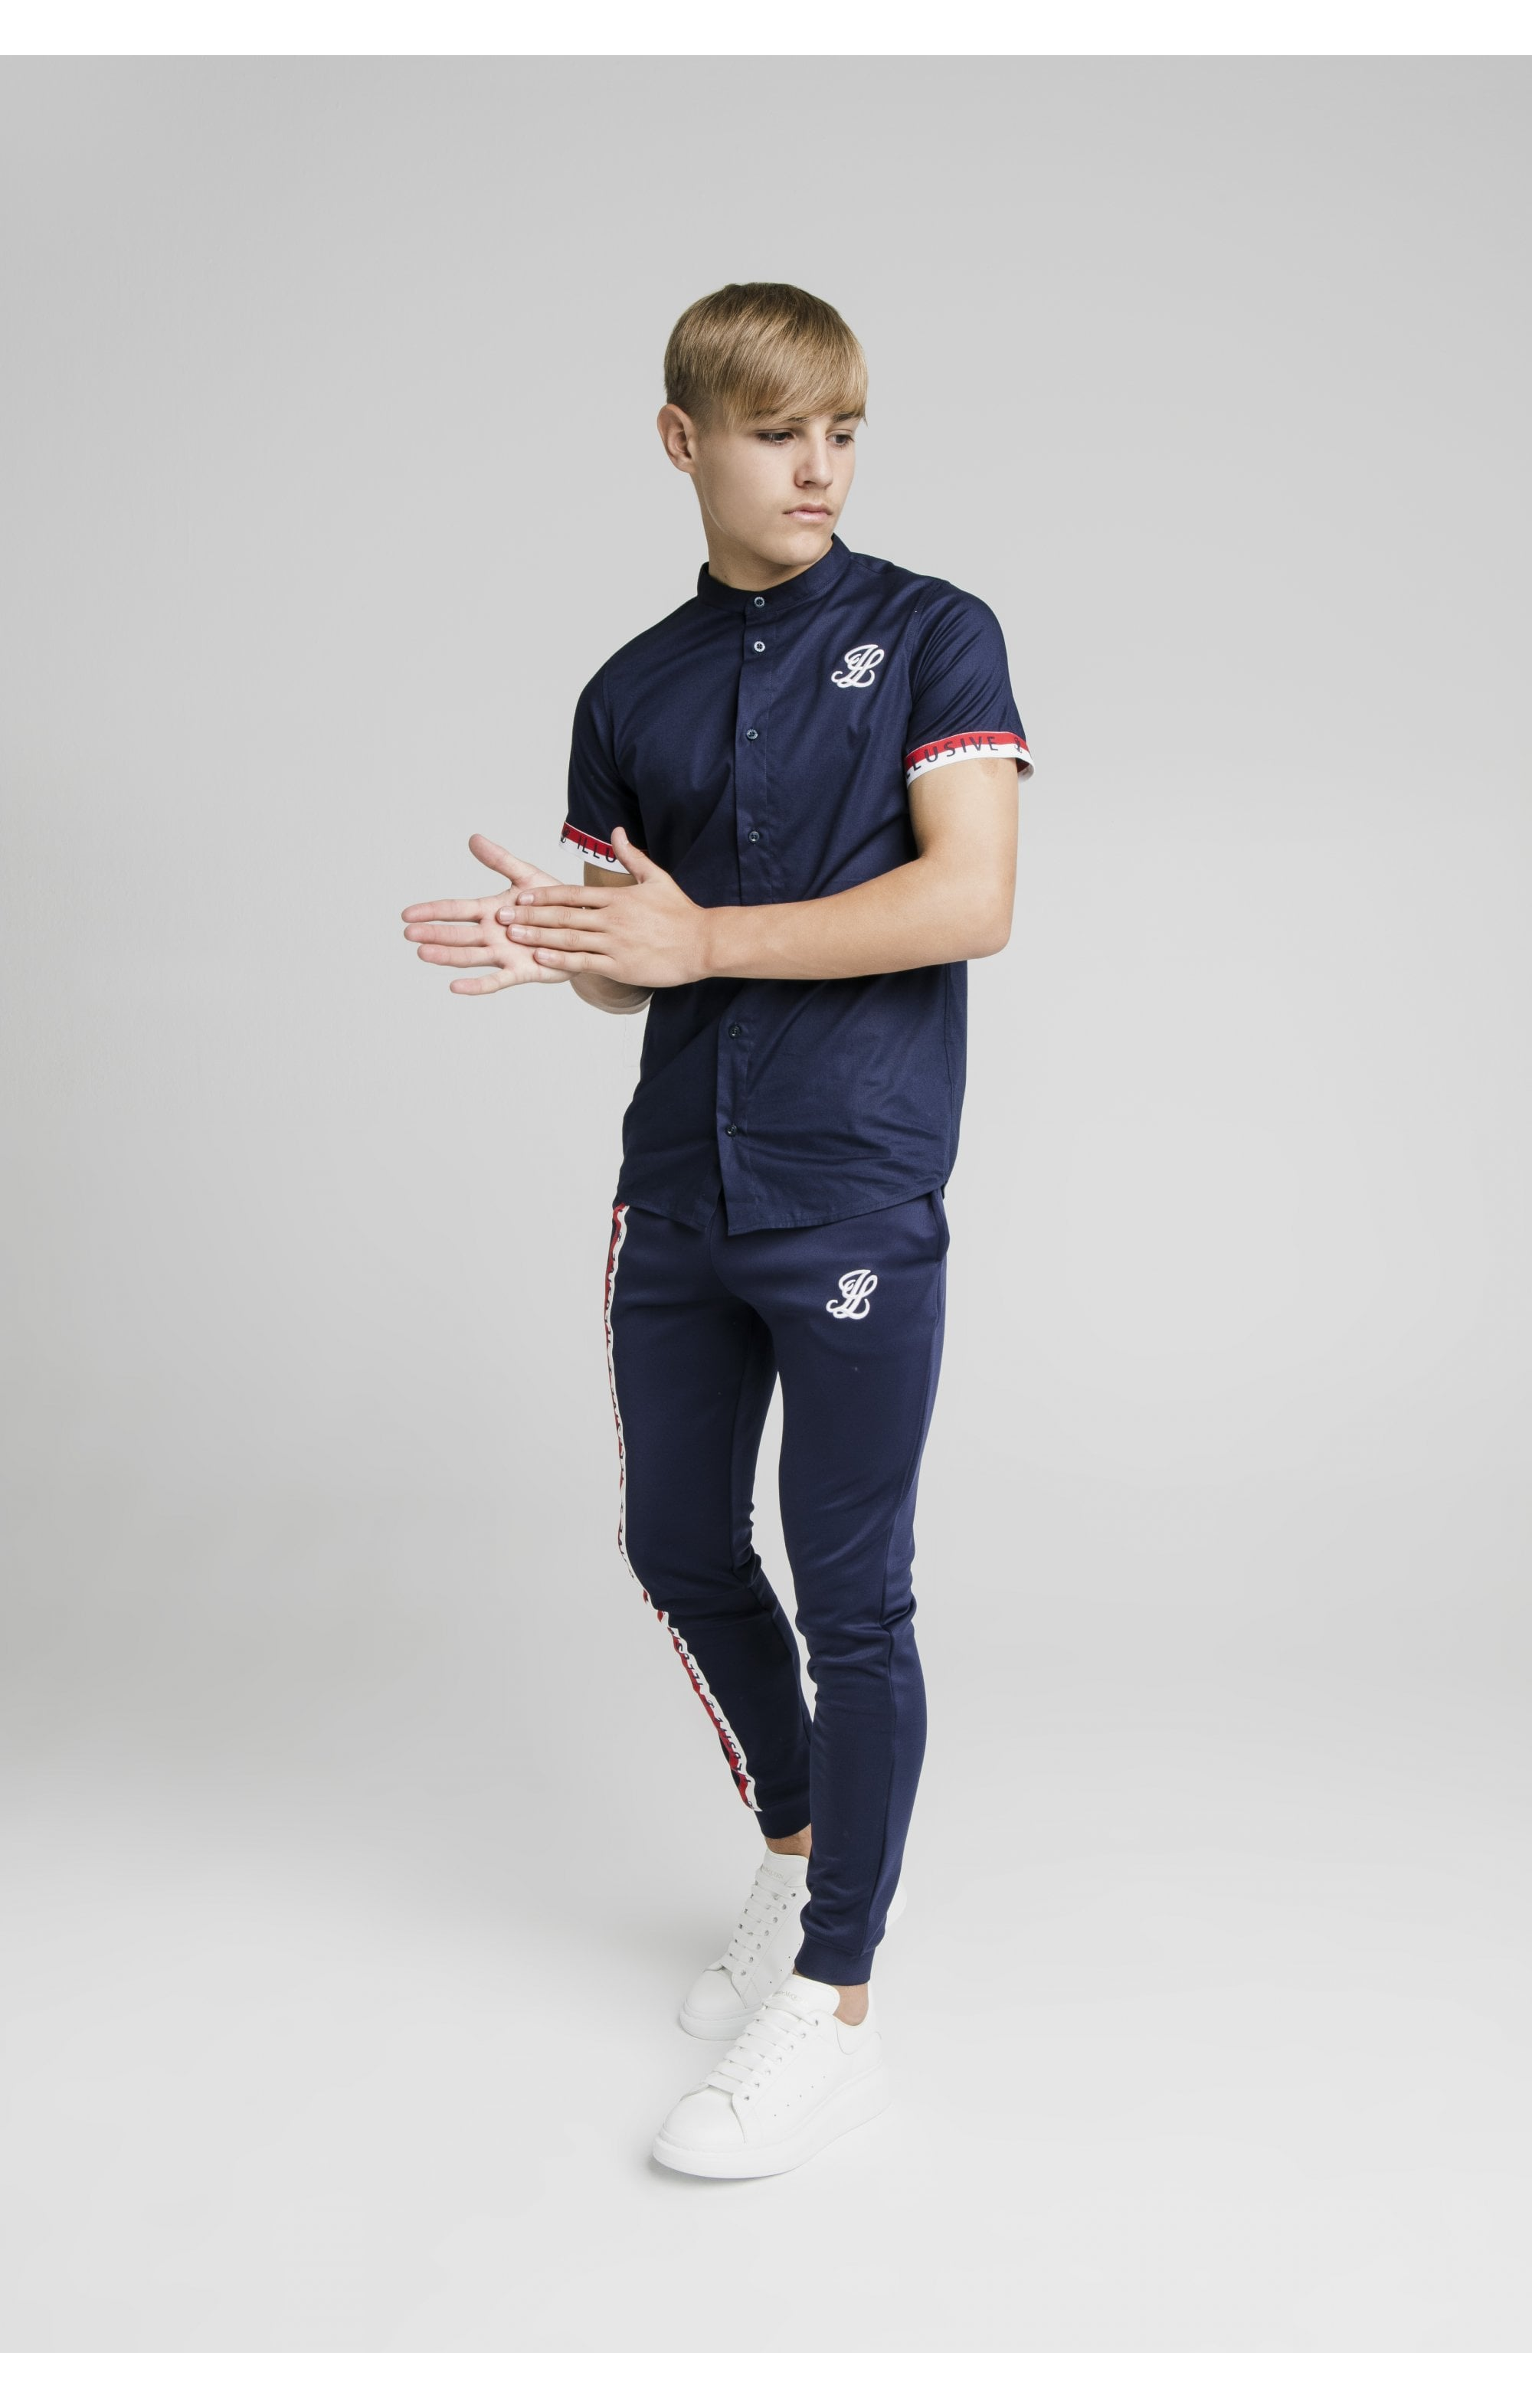 Illusive London S/S Tech Shirt - Navy (2)